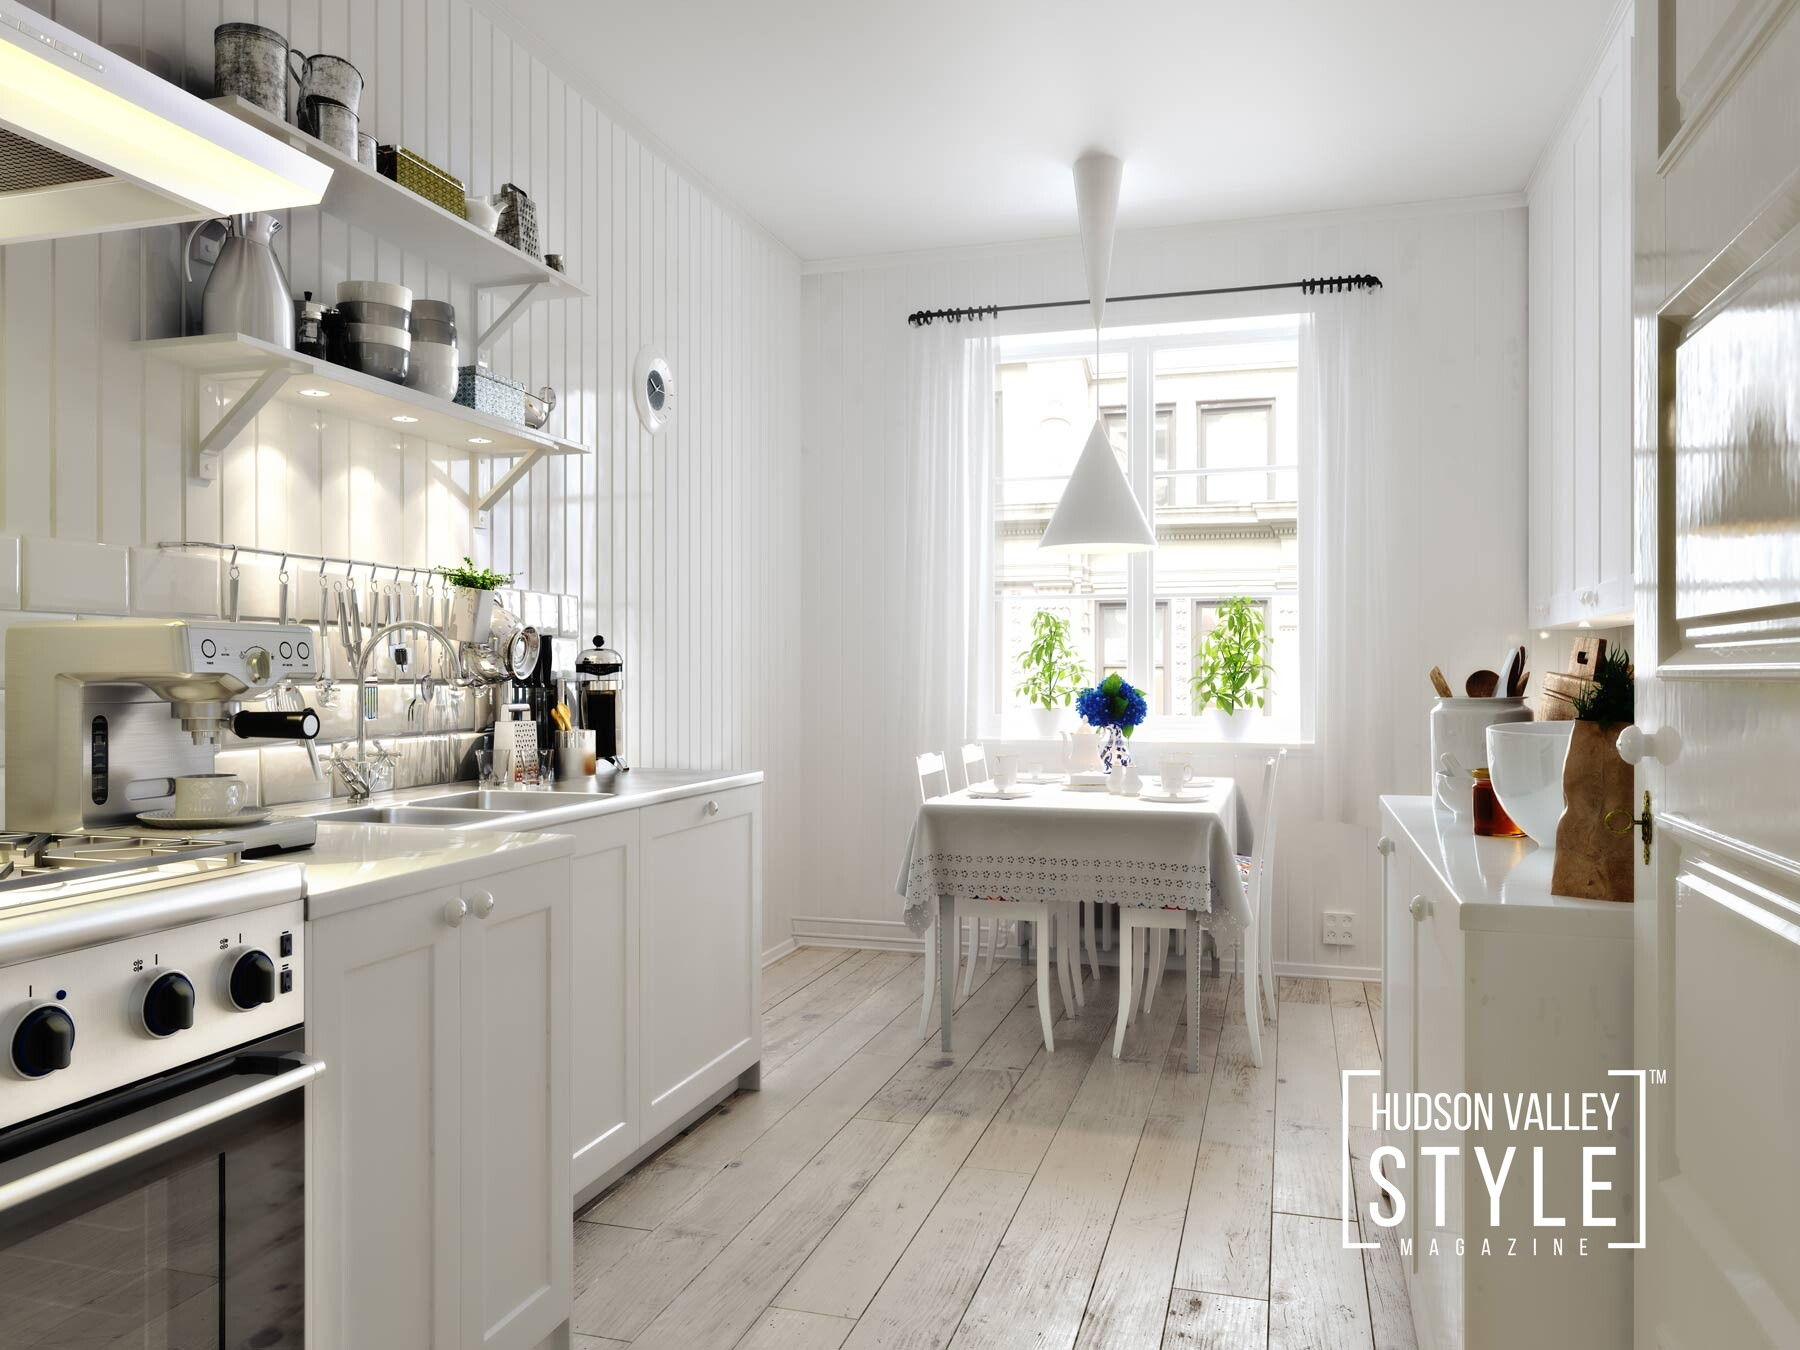 Brighten Your Kitchen Decor With The Flair of a Professional Home Decorator